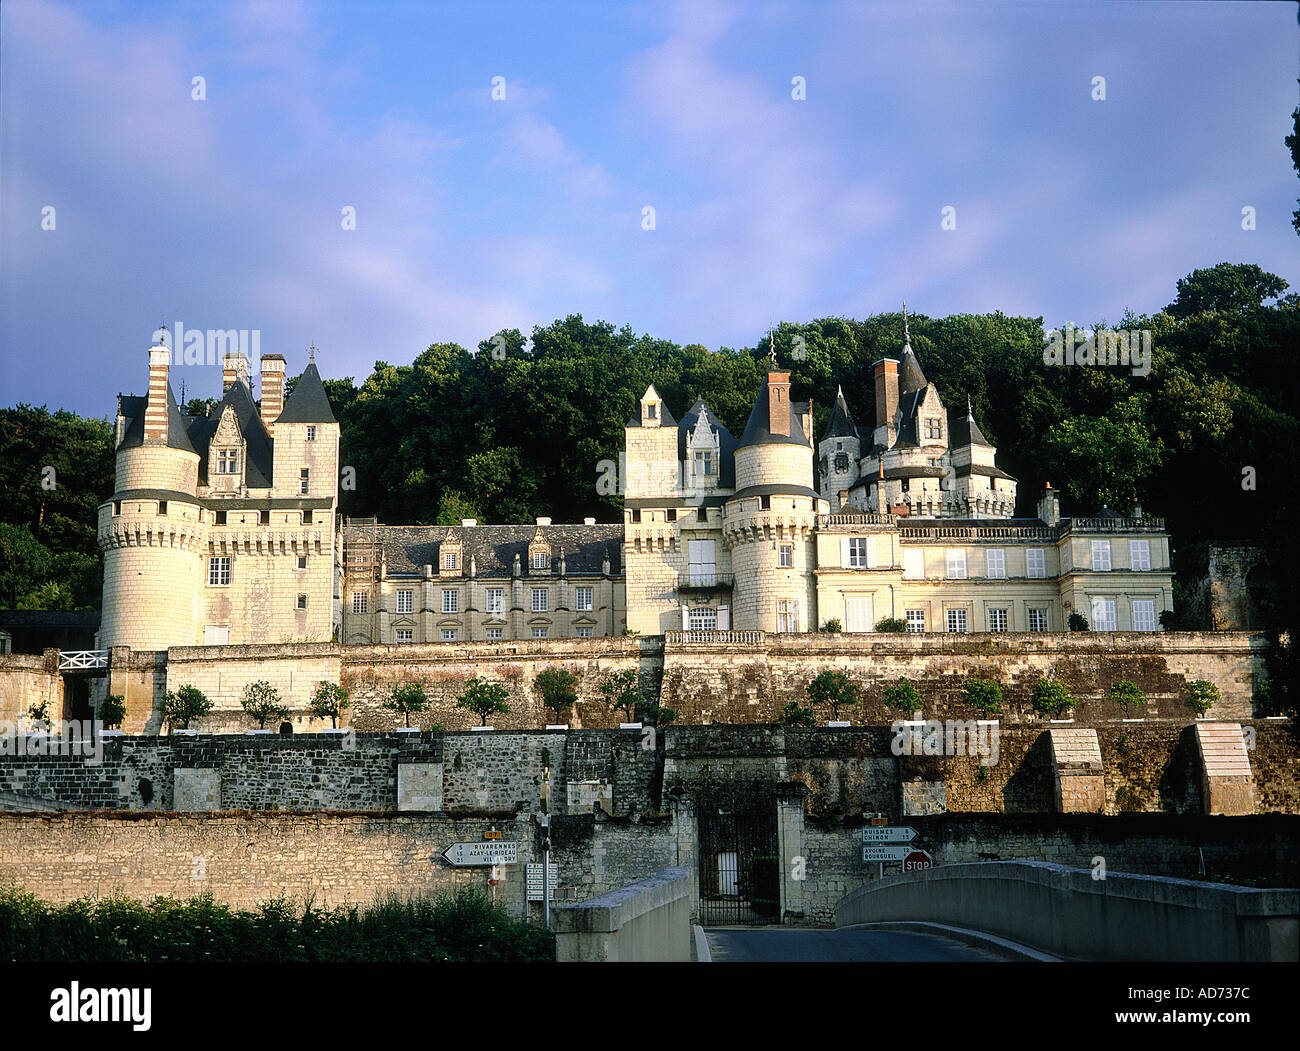 france touraine val de loire indre et loire 37 usse the castle on stock photo 881532 alamy. Black Bedroom Furniture Sets. Home Design Ideas